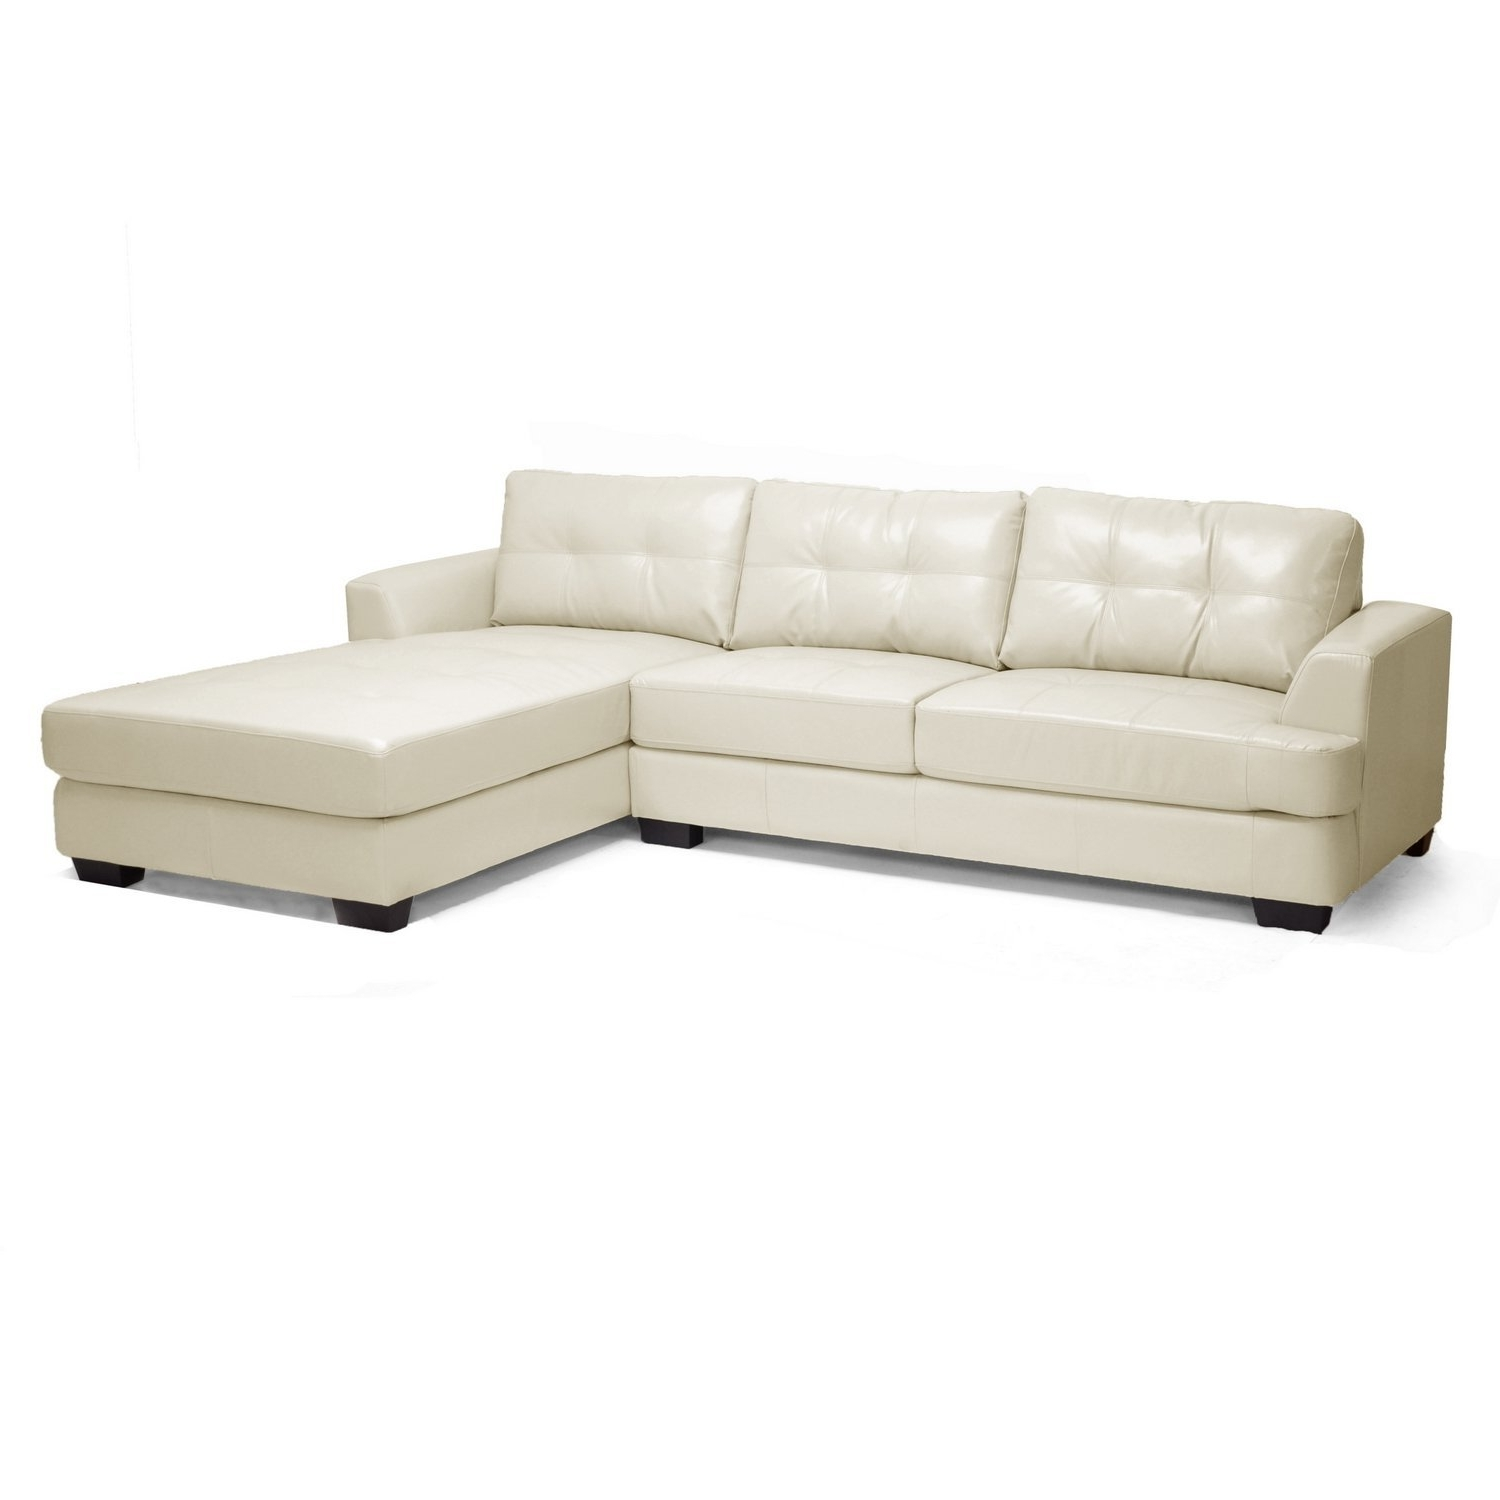 Leather Chaise Sofas Inside Most Current Amazon: Baxton Studio Dobson Leather Modern Sectional Sofa (View 7 of 15)